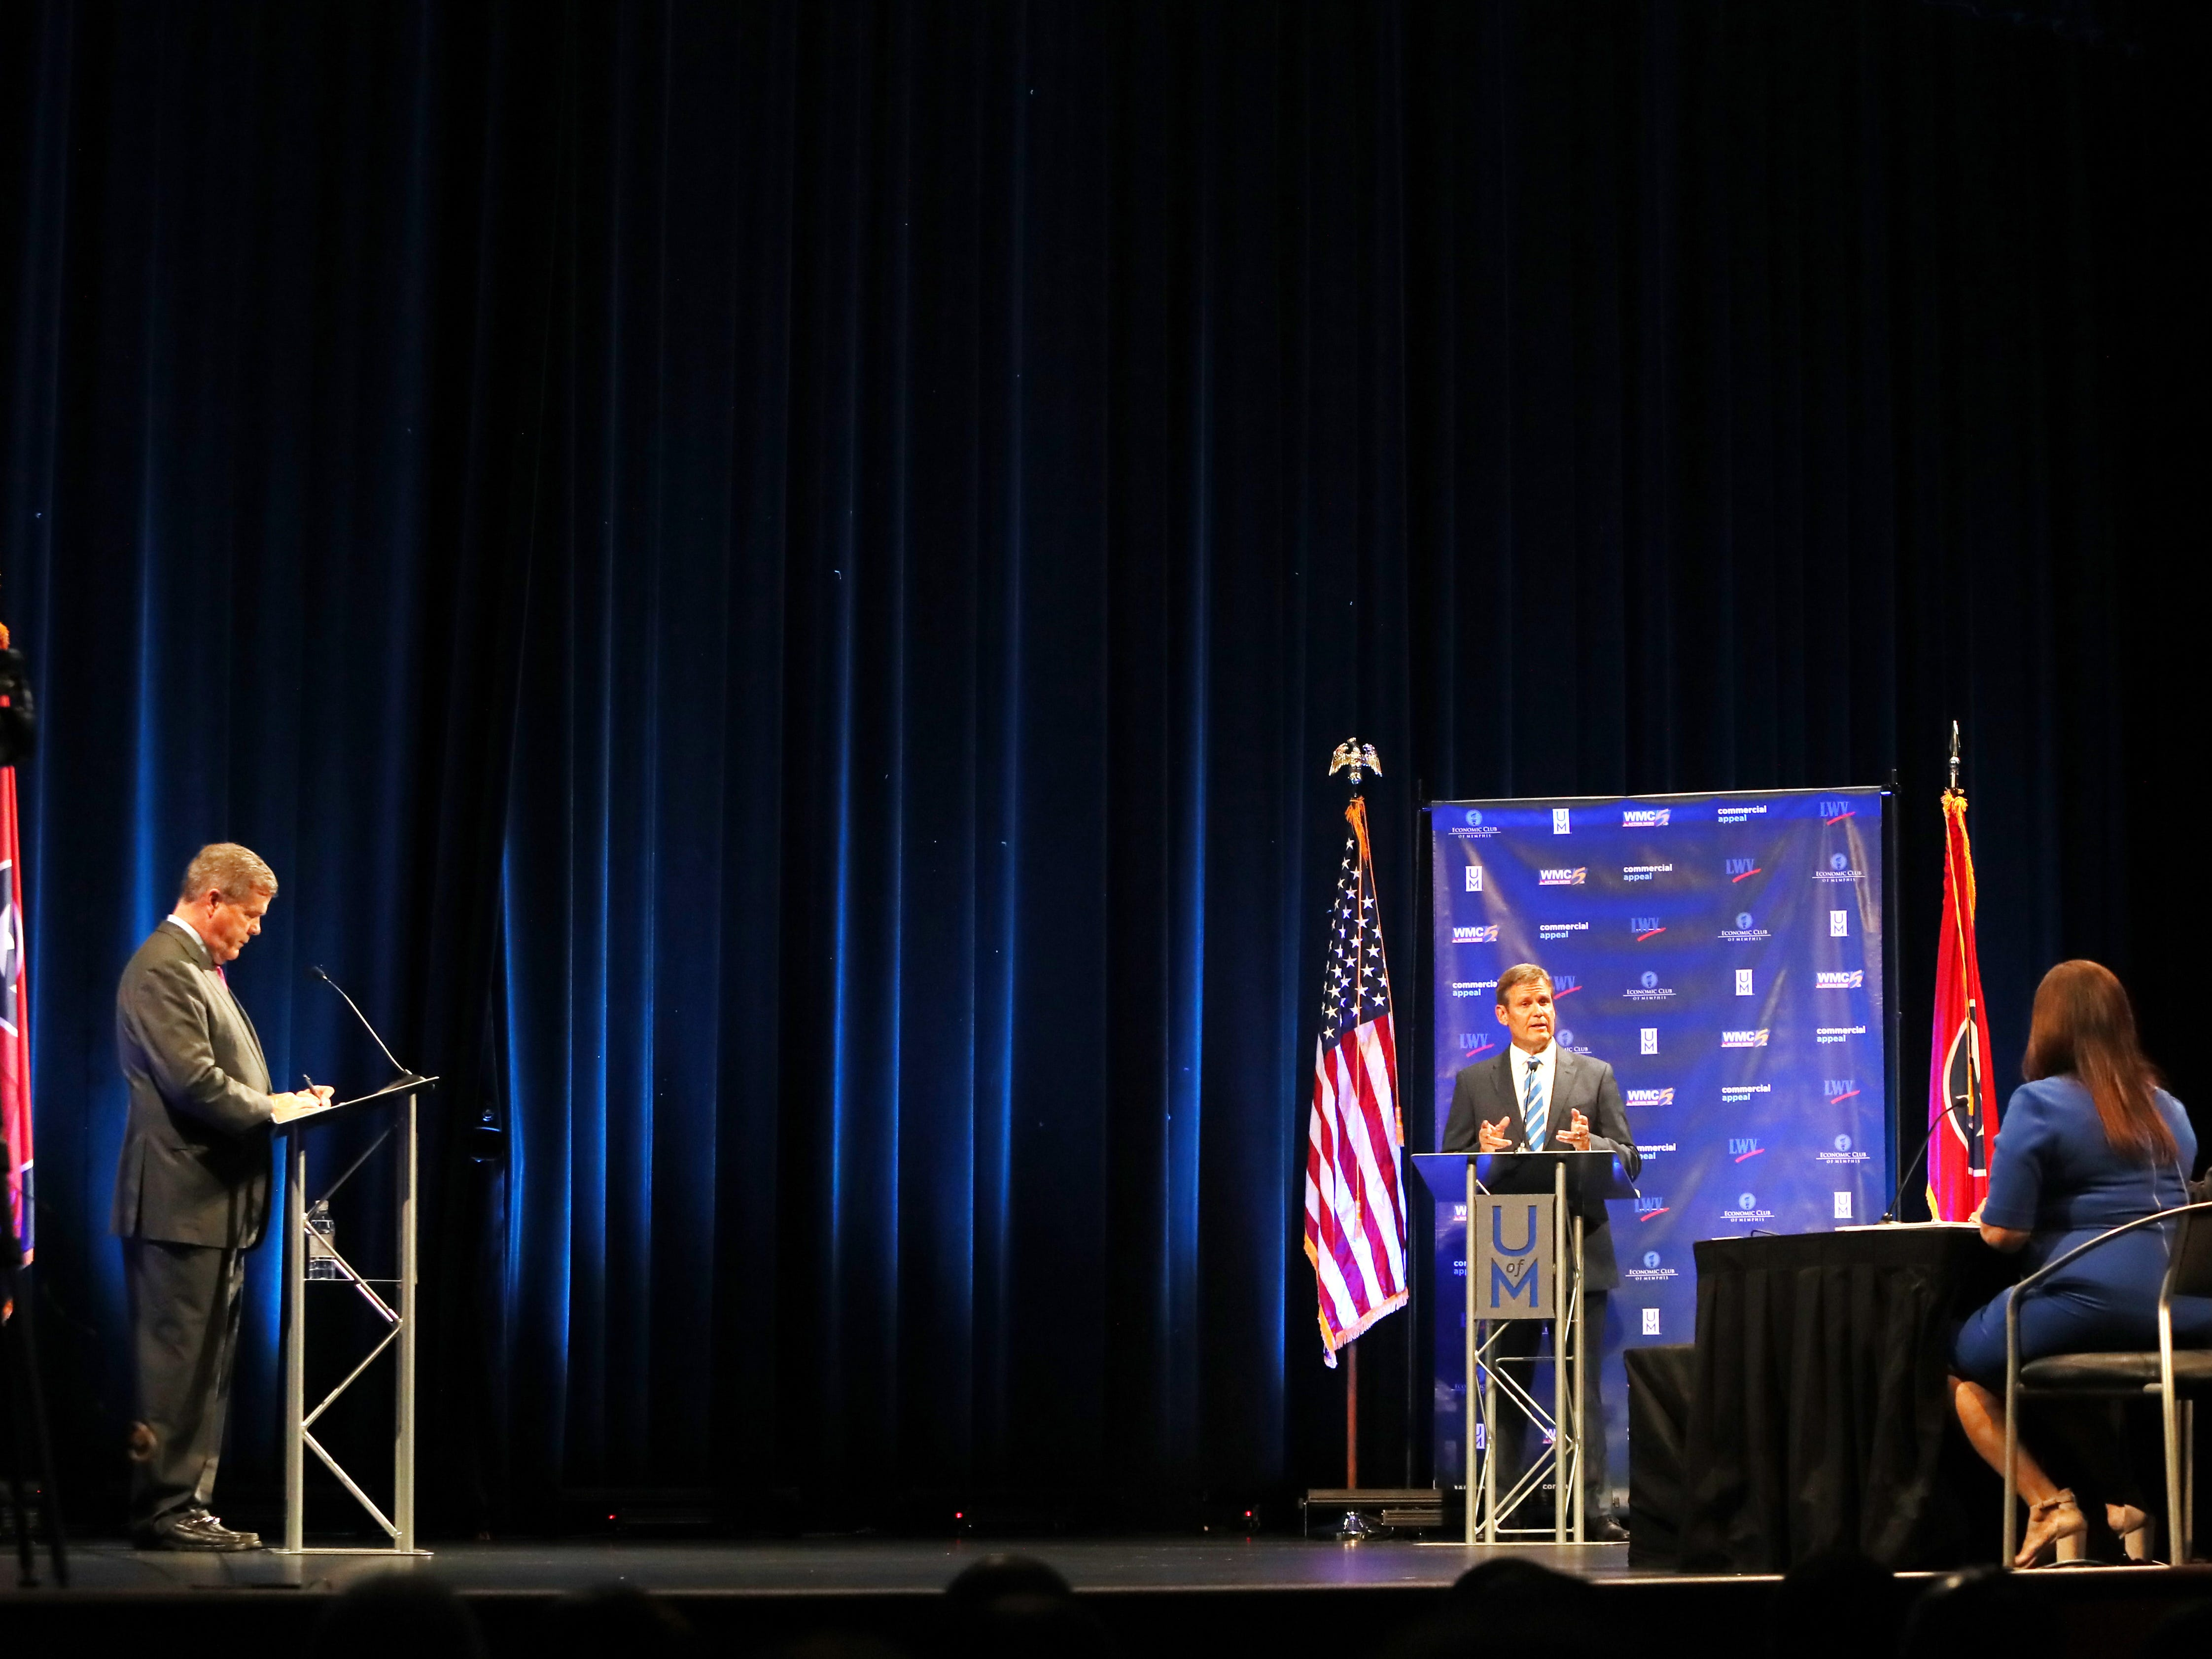 Republican candidate Bill Lee speaks at the gubernatorial debate with Democratic candidate Karl Dean at the University of Memphis' Michael D. Rose Theater in Memphis on Tuesday, Oct. 2, 2018.